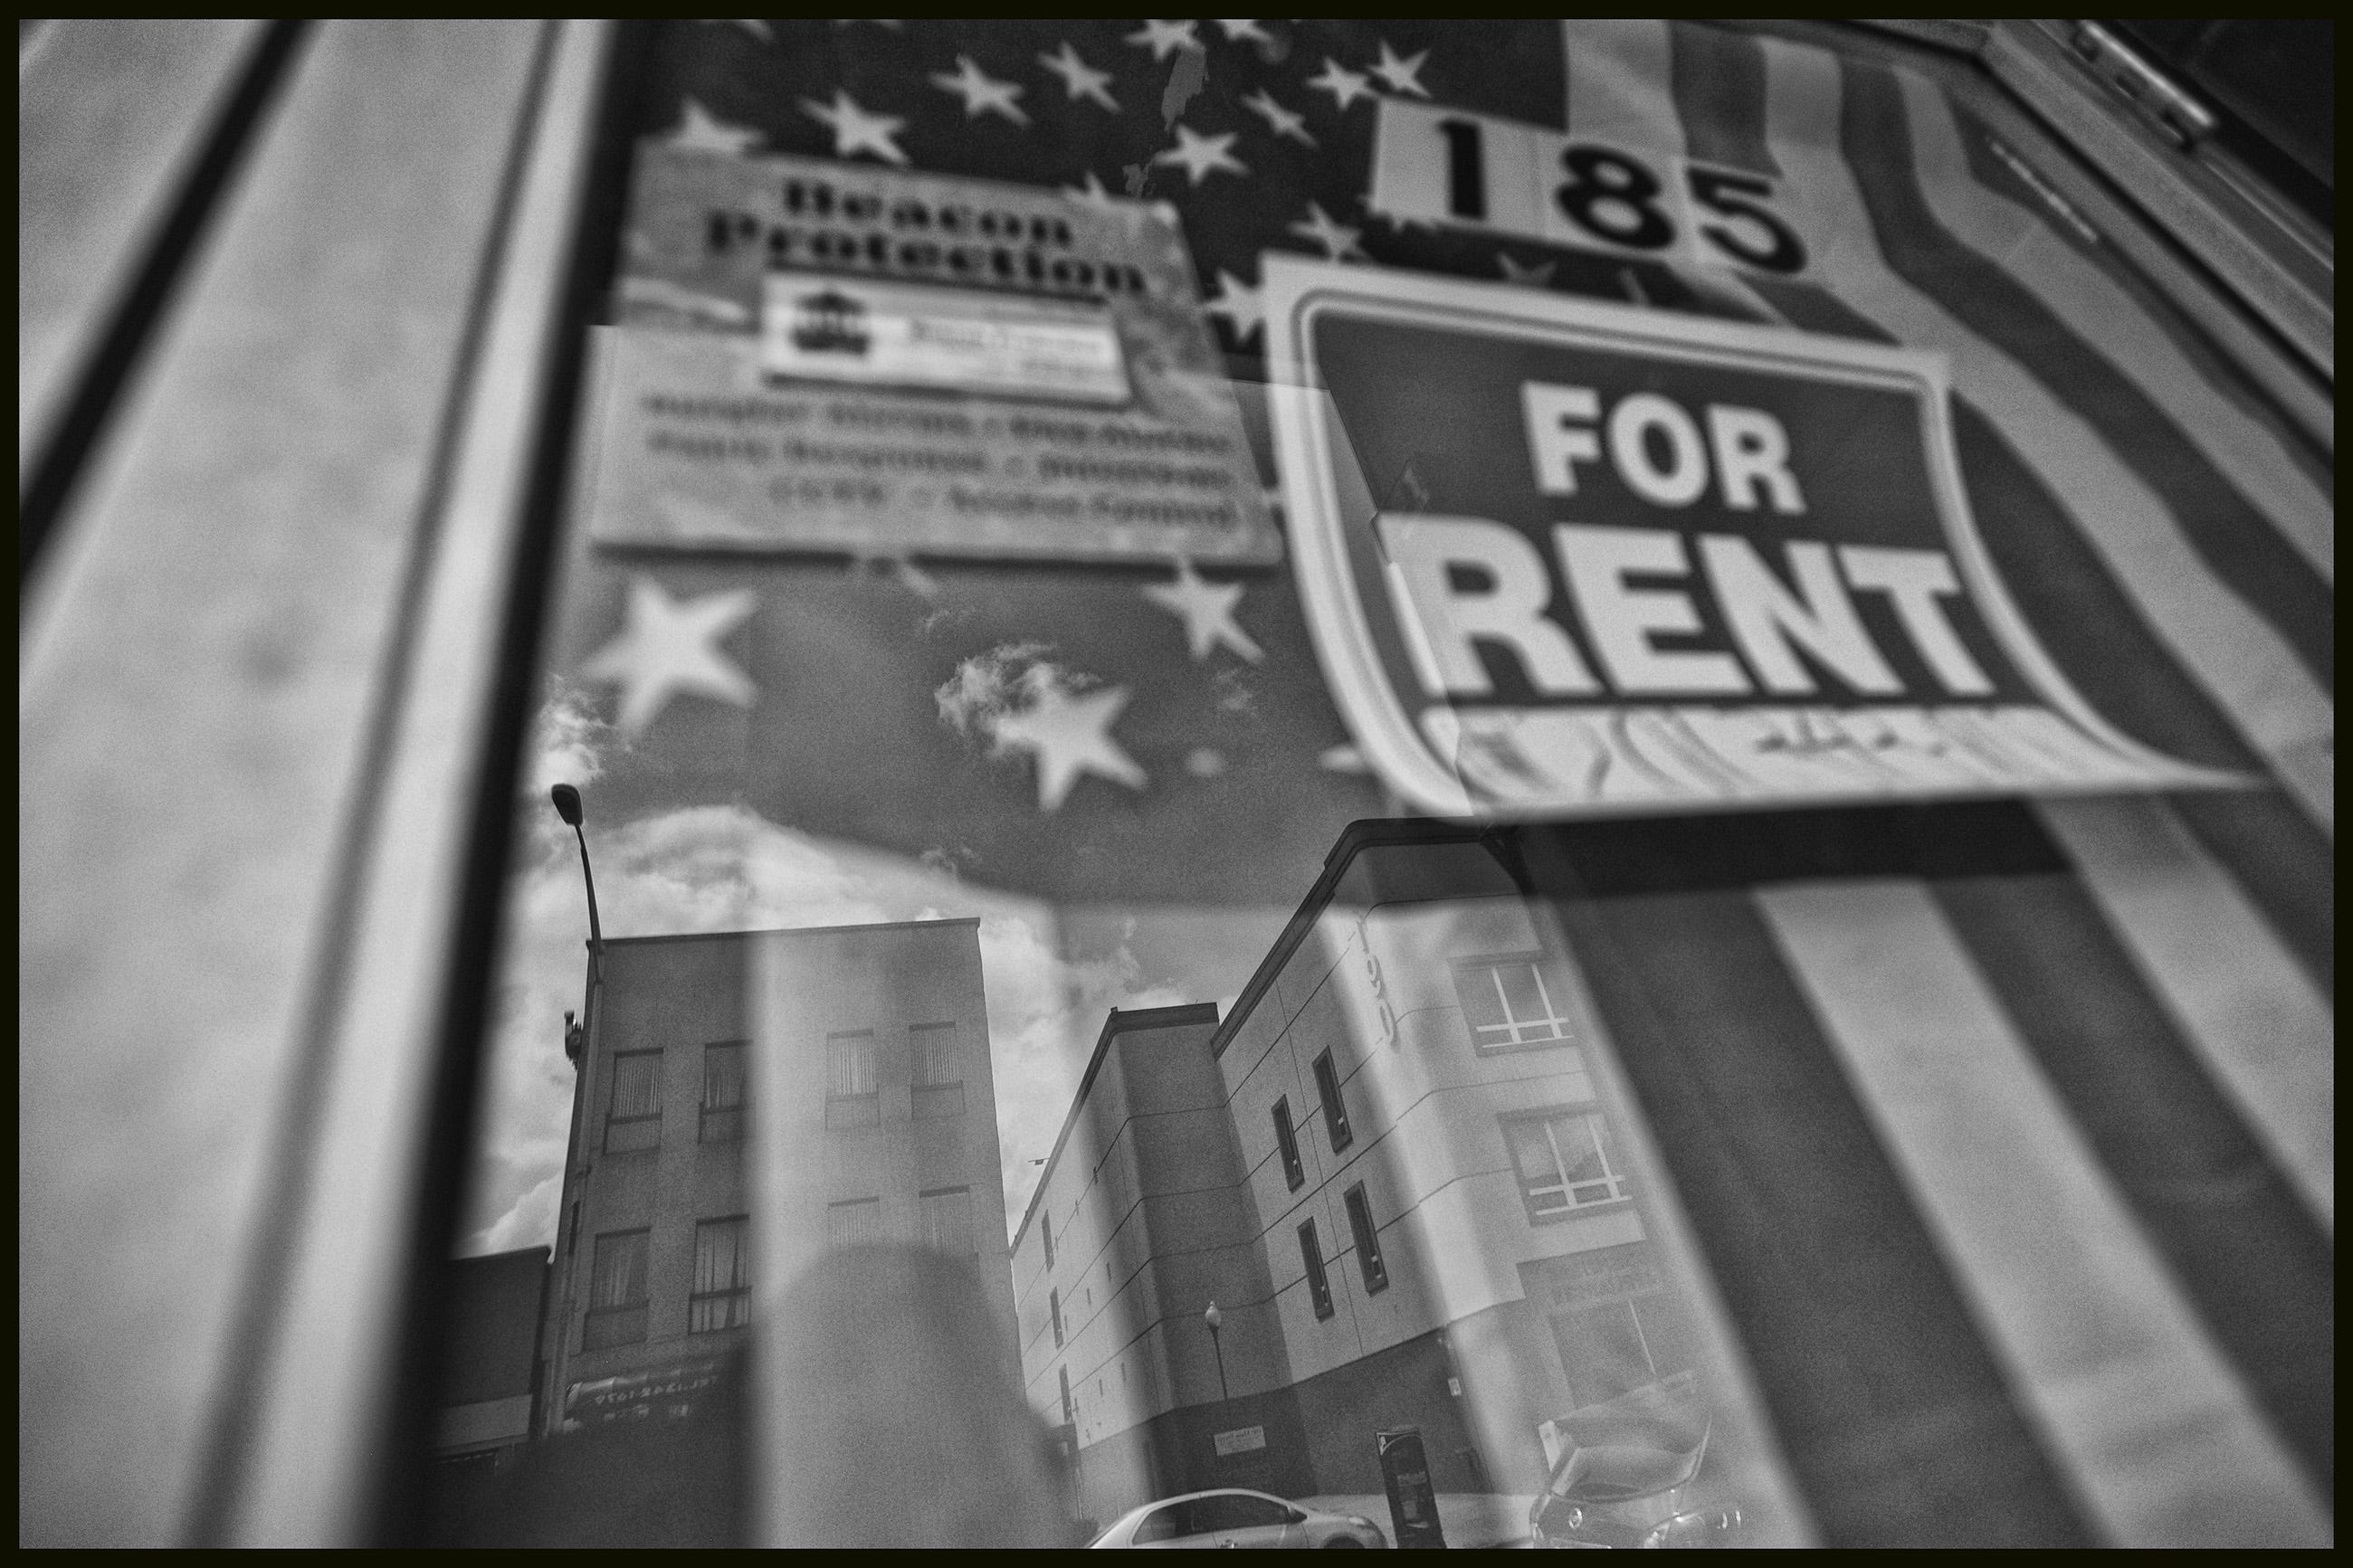 A for rent sign hangs in front of an American flag on a storefront door on Main Street in Hackensack.